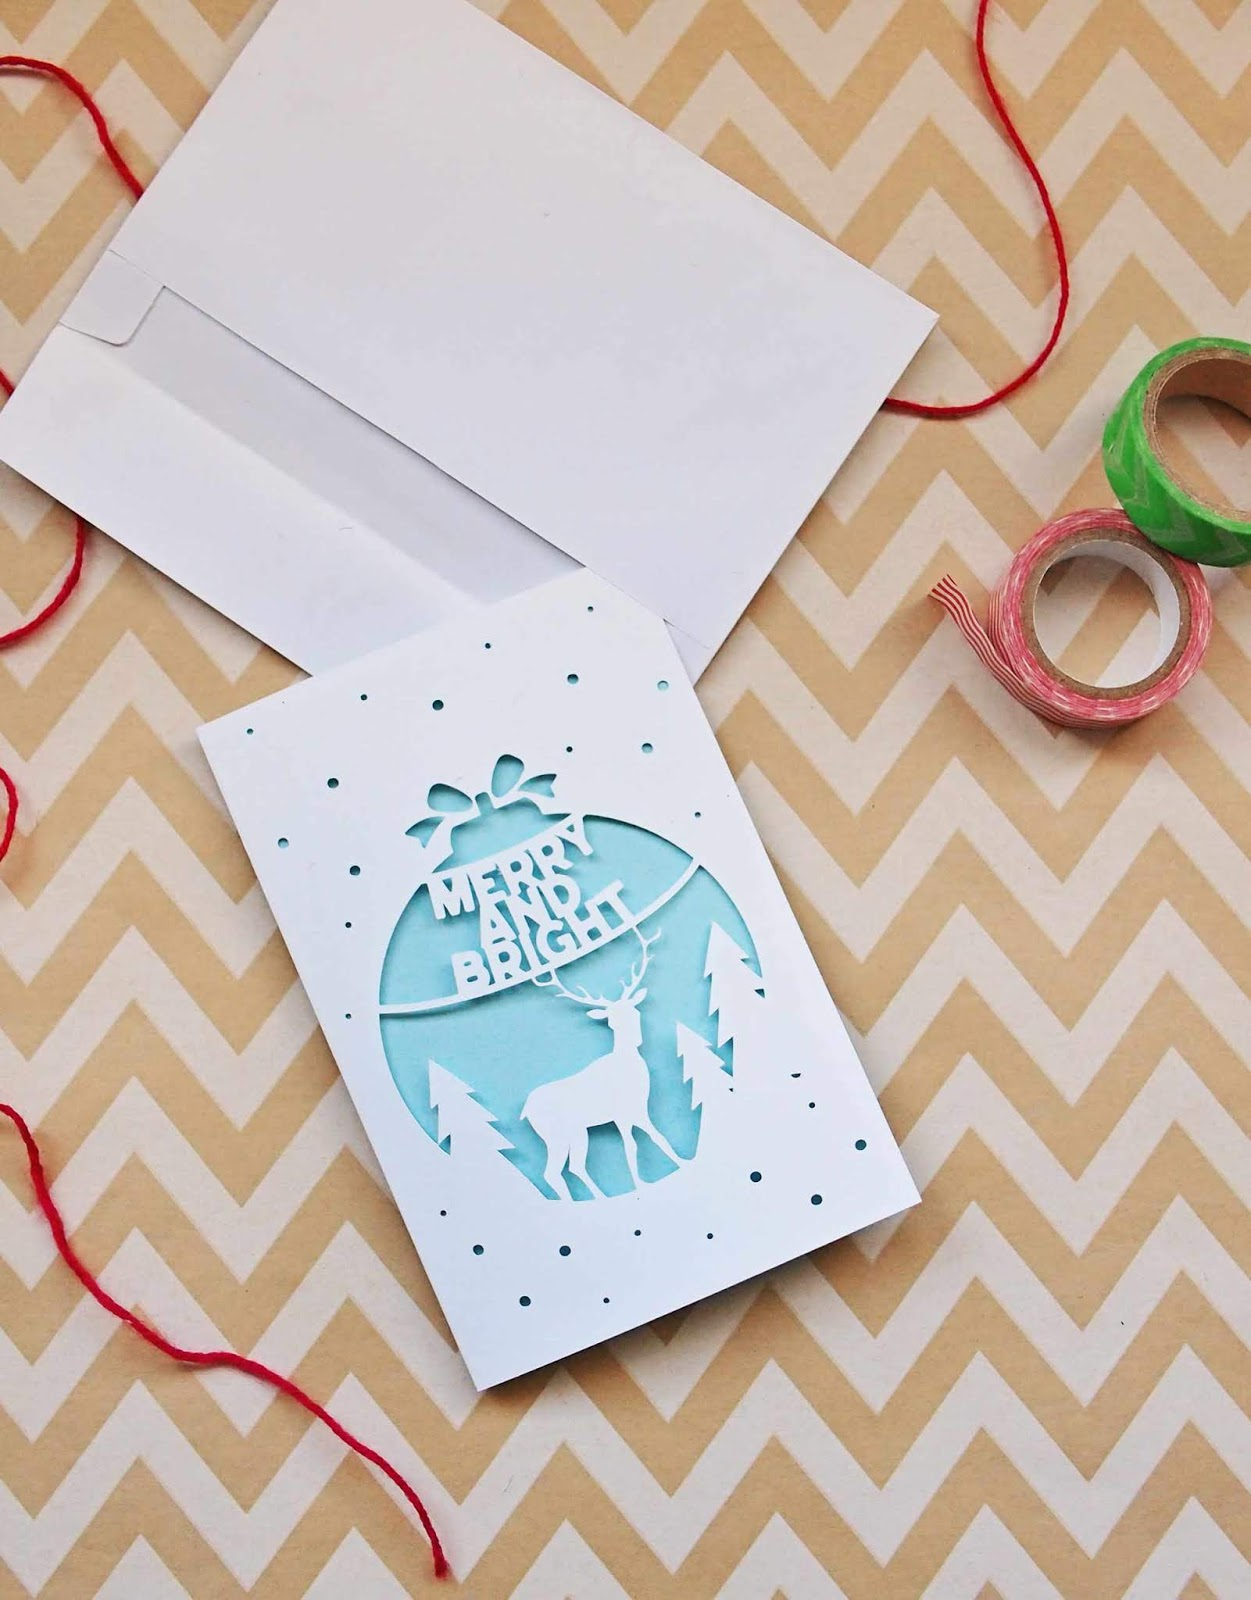 Make Your Own Christmas Cutout Cards! (Free Download)